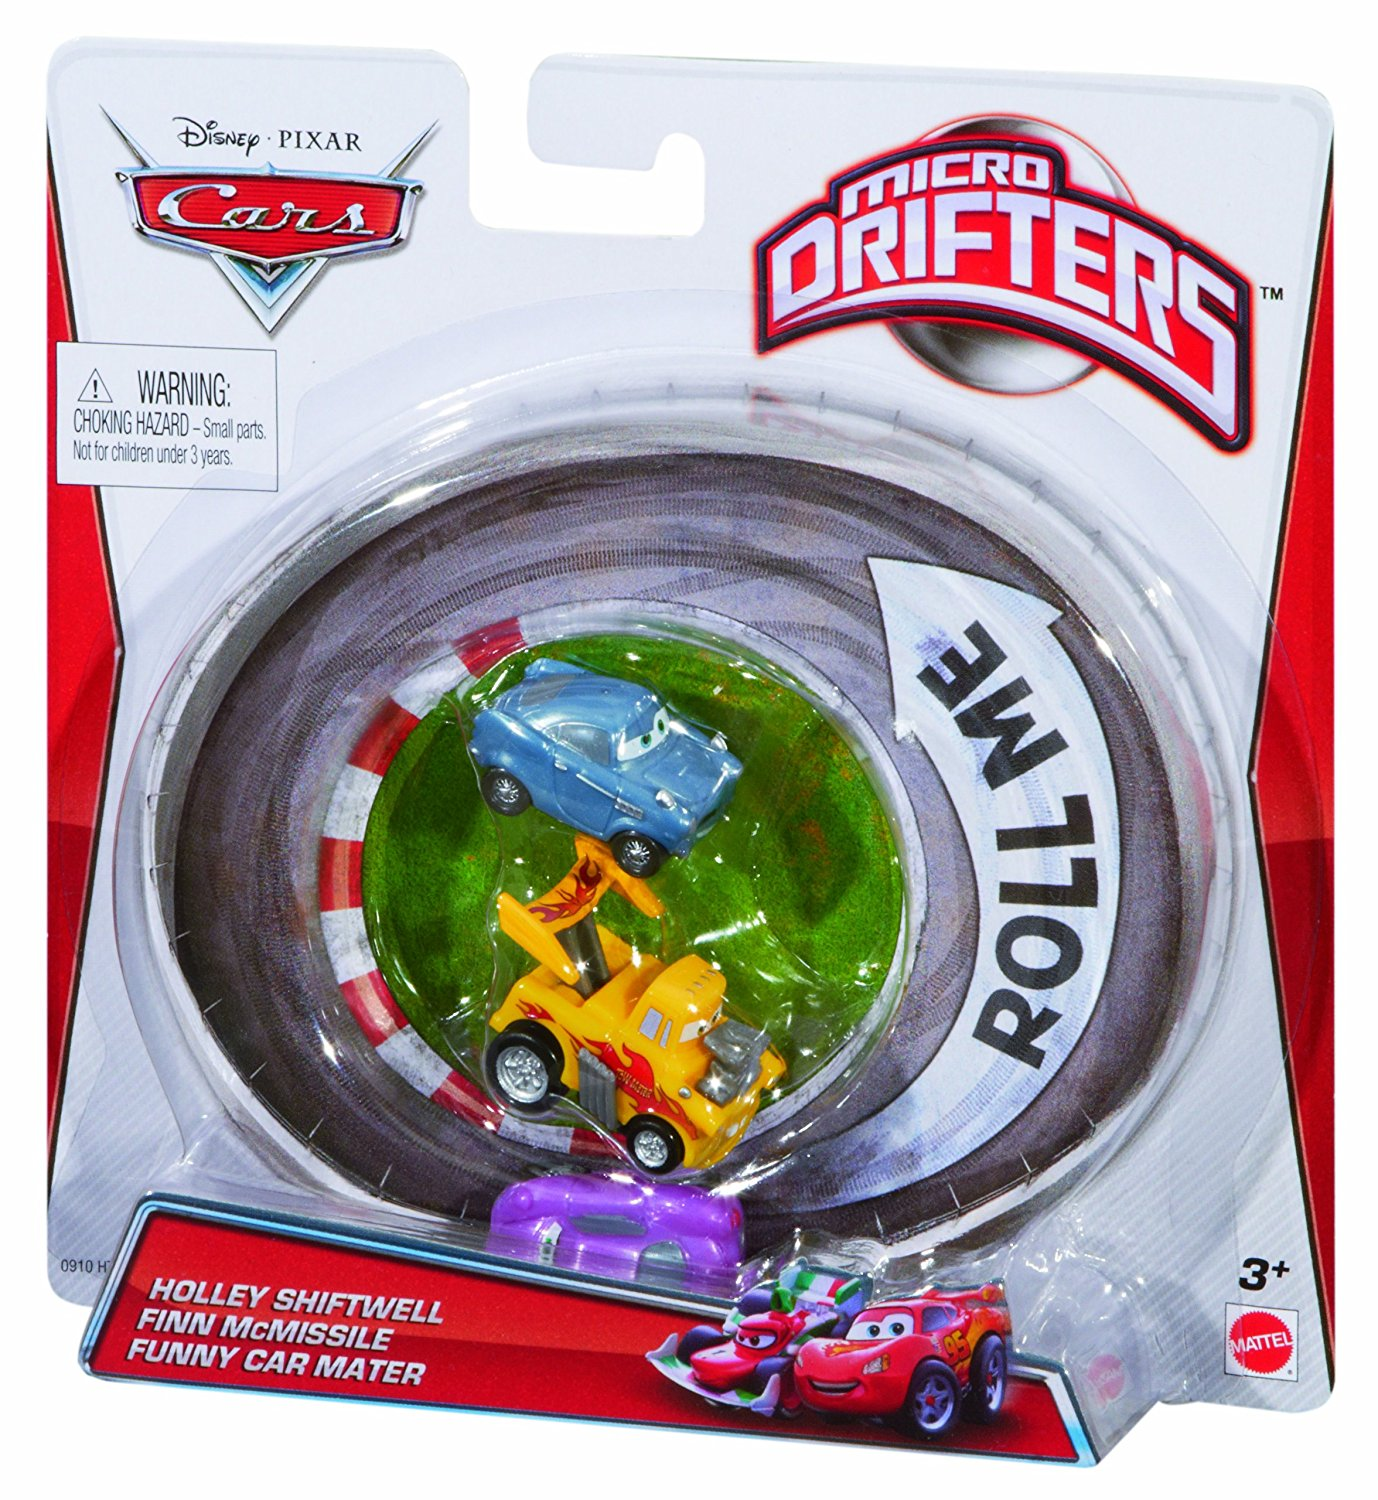 Disney/Pixar Cars, Micro Drifters Vehicles, Holley Shiftwell, Finn McMissile, and Funny Car Mater , 3-Pack